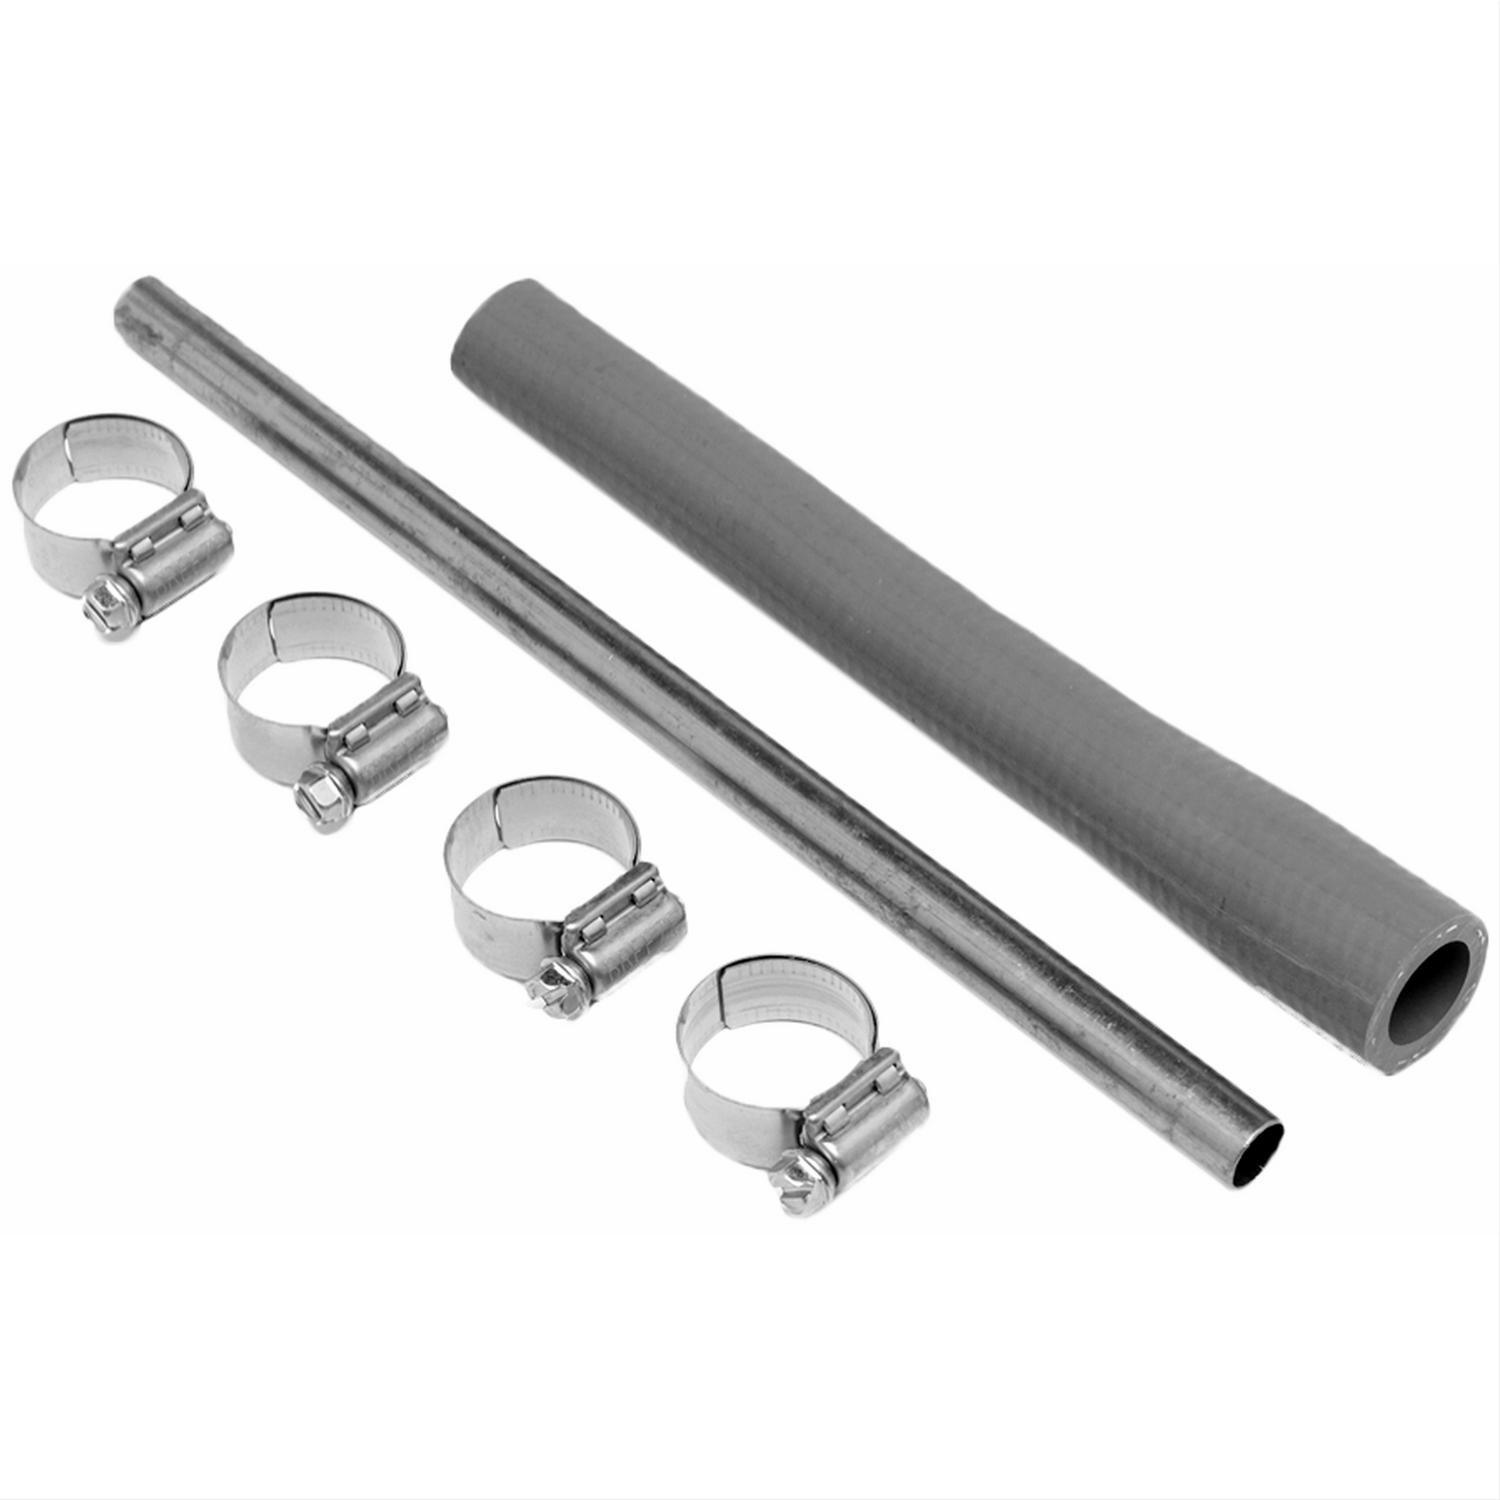 Walker Universal Catalytic Converter Air Tubes 35574 Free Shipping 2004 Ford F 150 On Orders Over 99 At Summit Racing